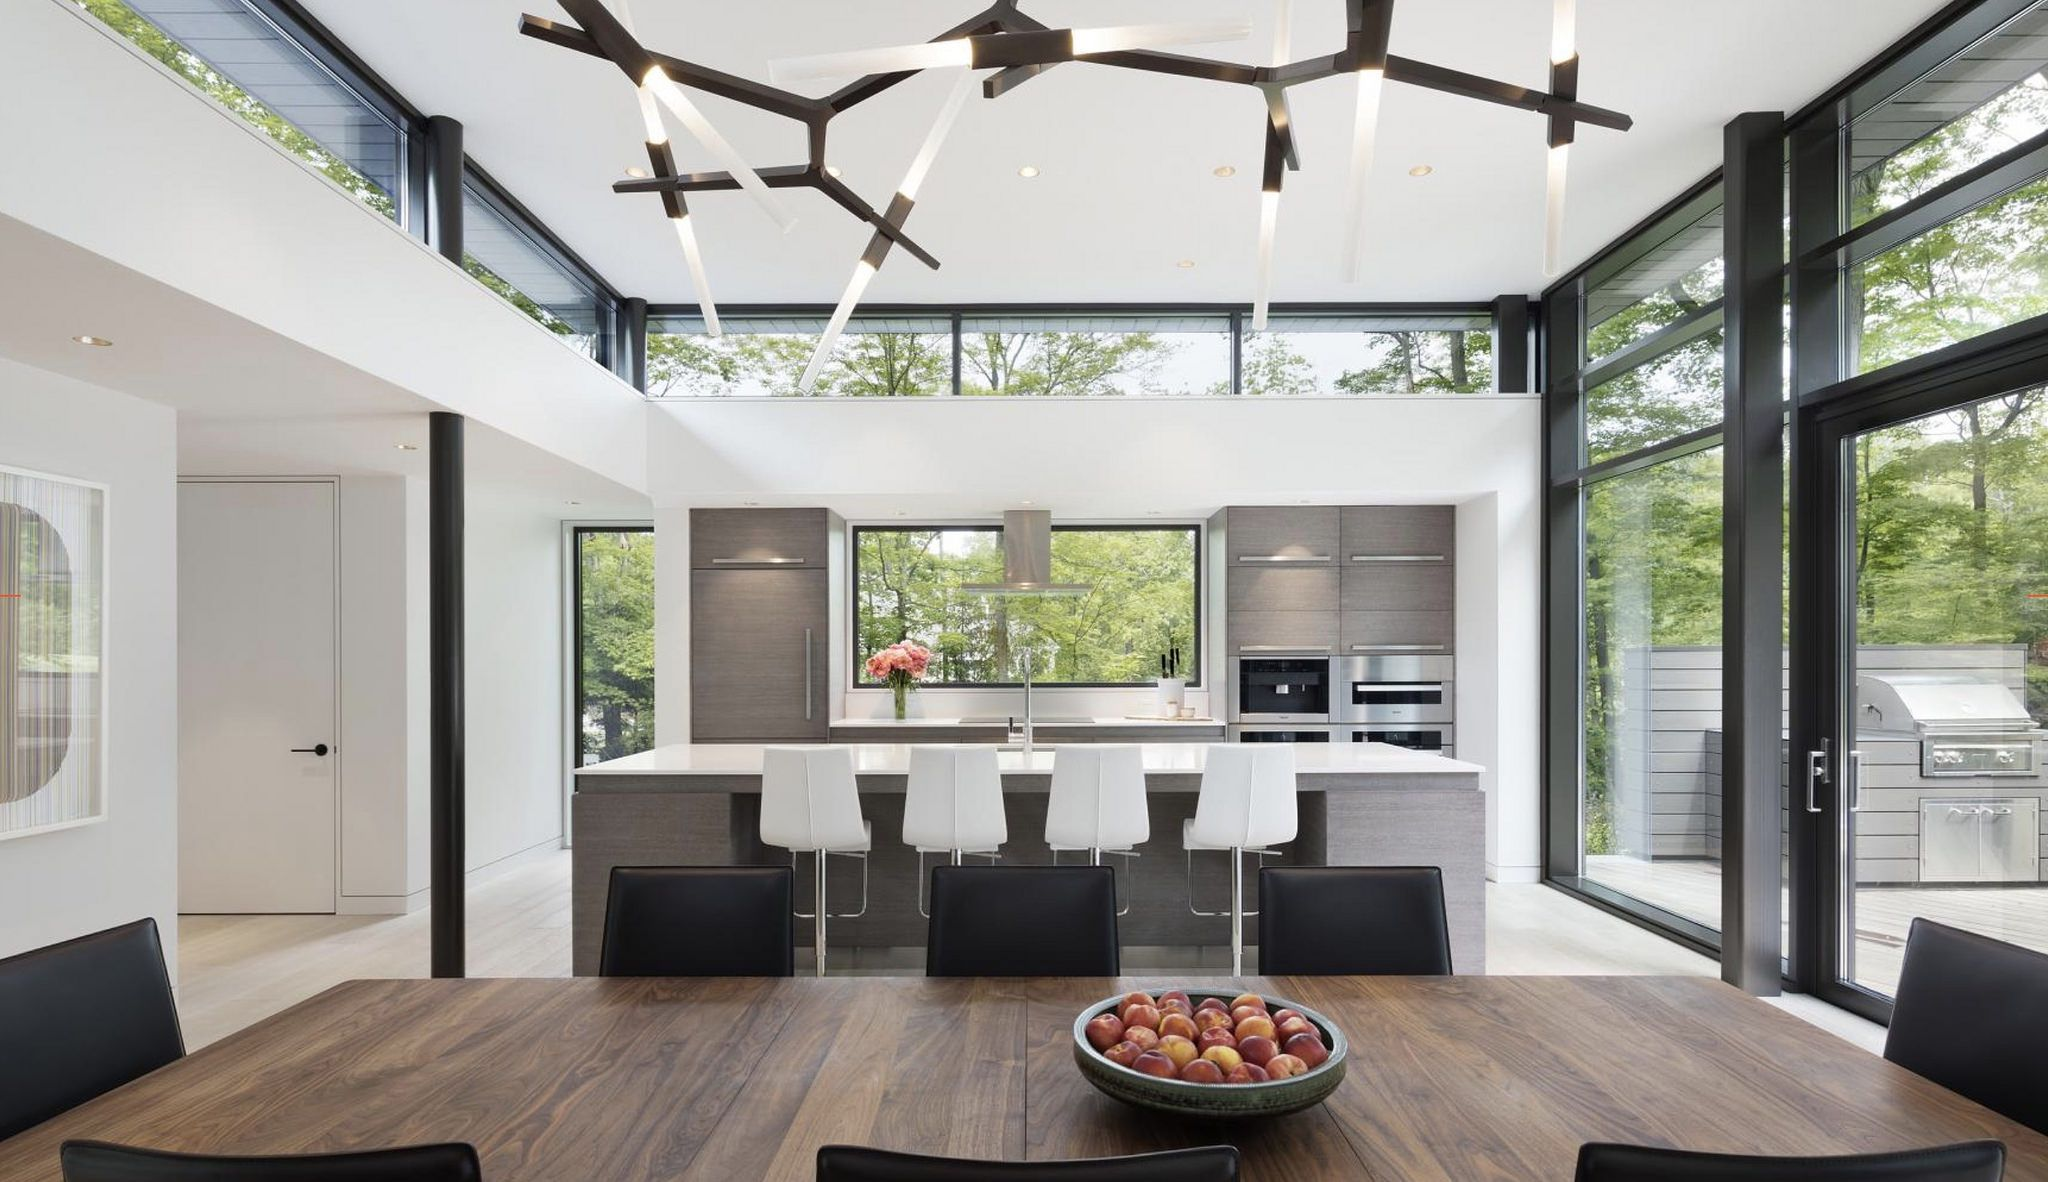 Comedor cocina by kin tiko kitchen countertops cabinetry contemporary interior design also house inspiration home modern dining rh pinterest